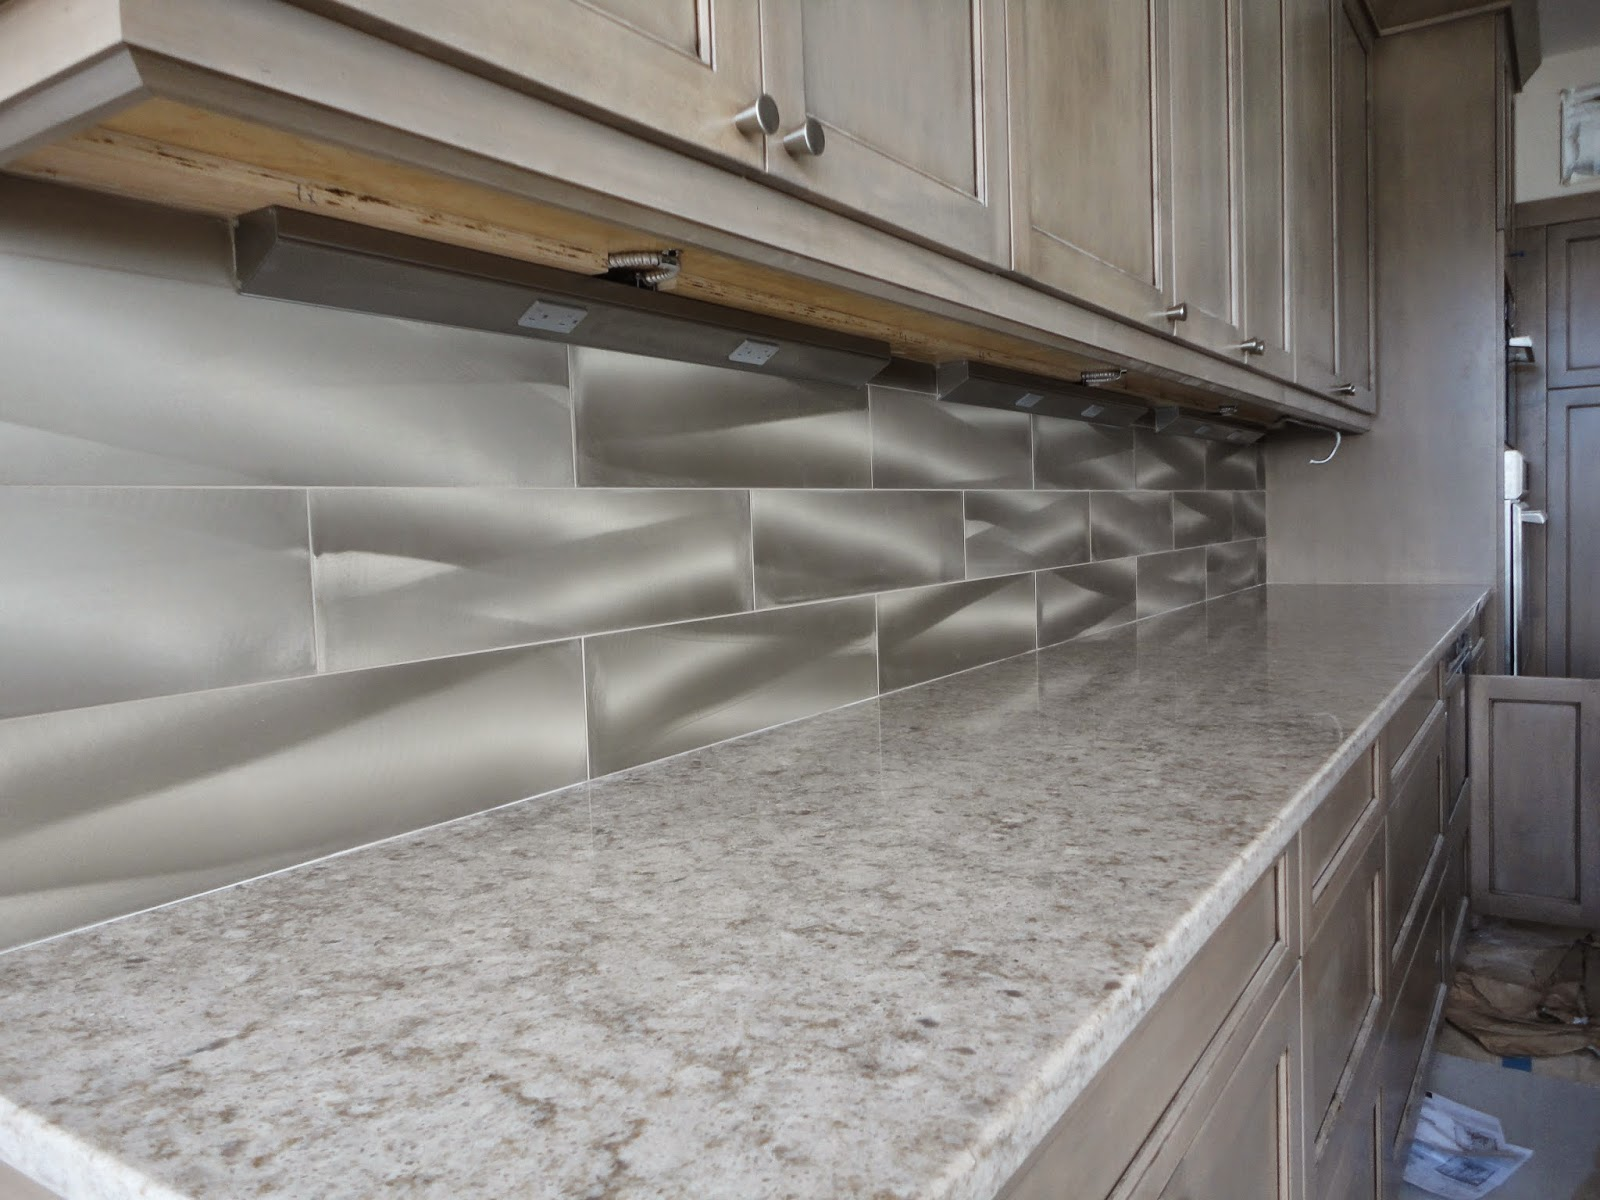 Kitchen Backsplash Tile Installation Part - 31: Before Having A Tile Contractor Install These Tile Make Sure To Check Their  Qualifications And References Because A Mistake Could Become Very Costly  Due To ...